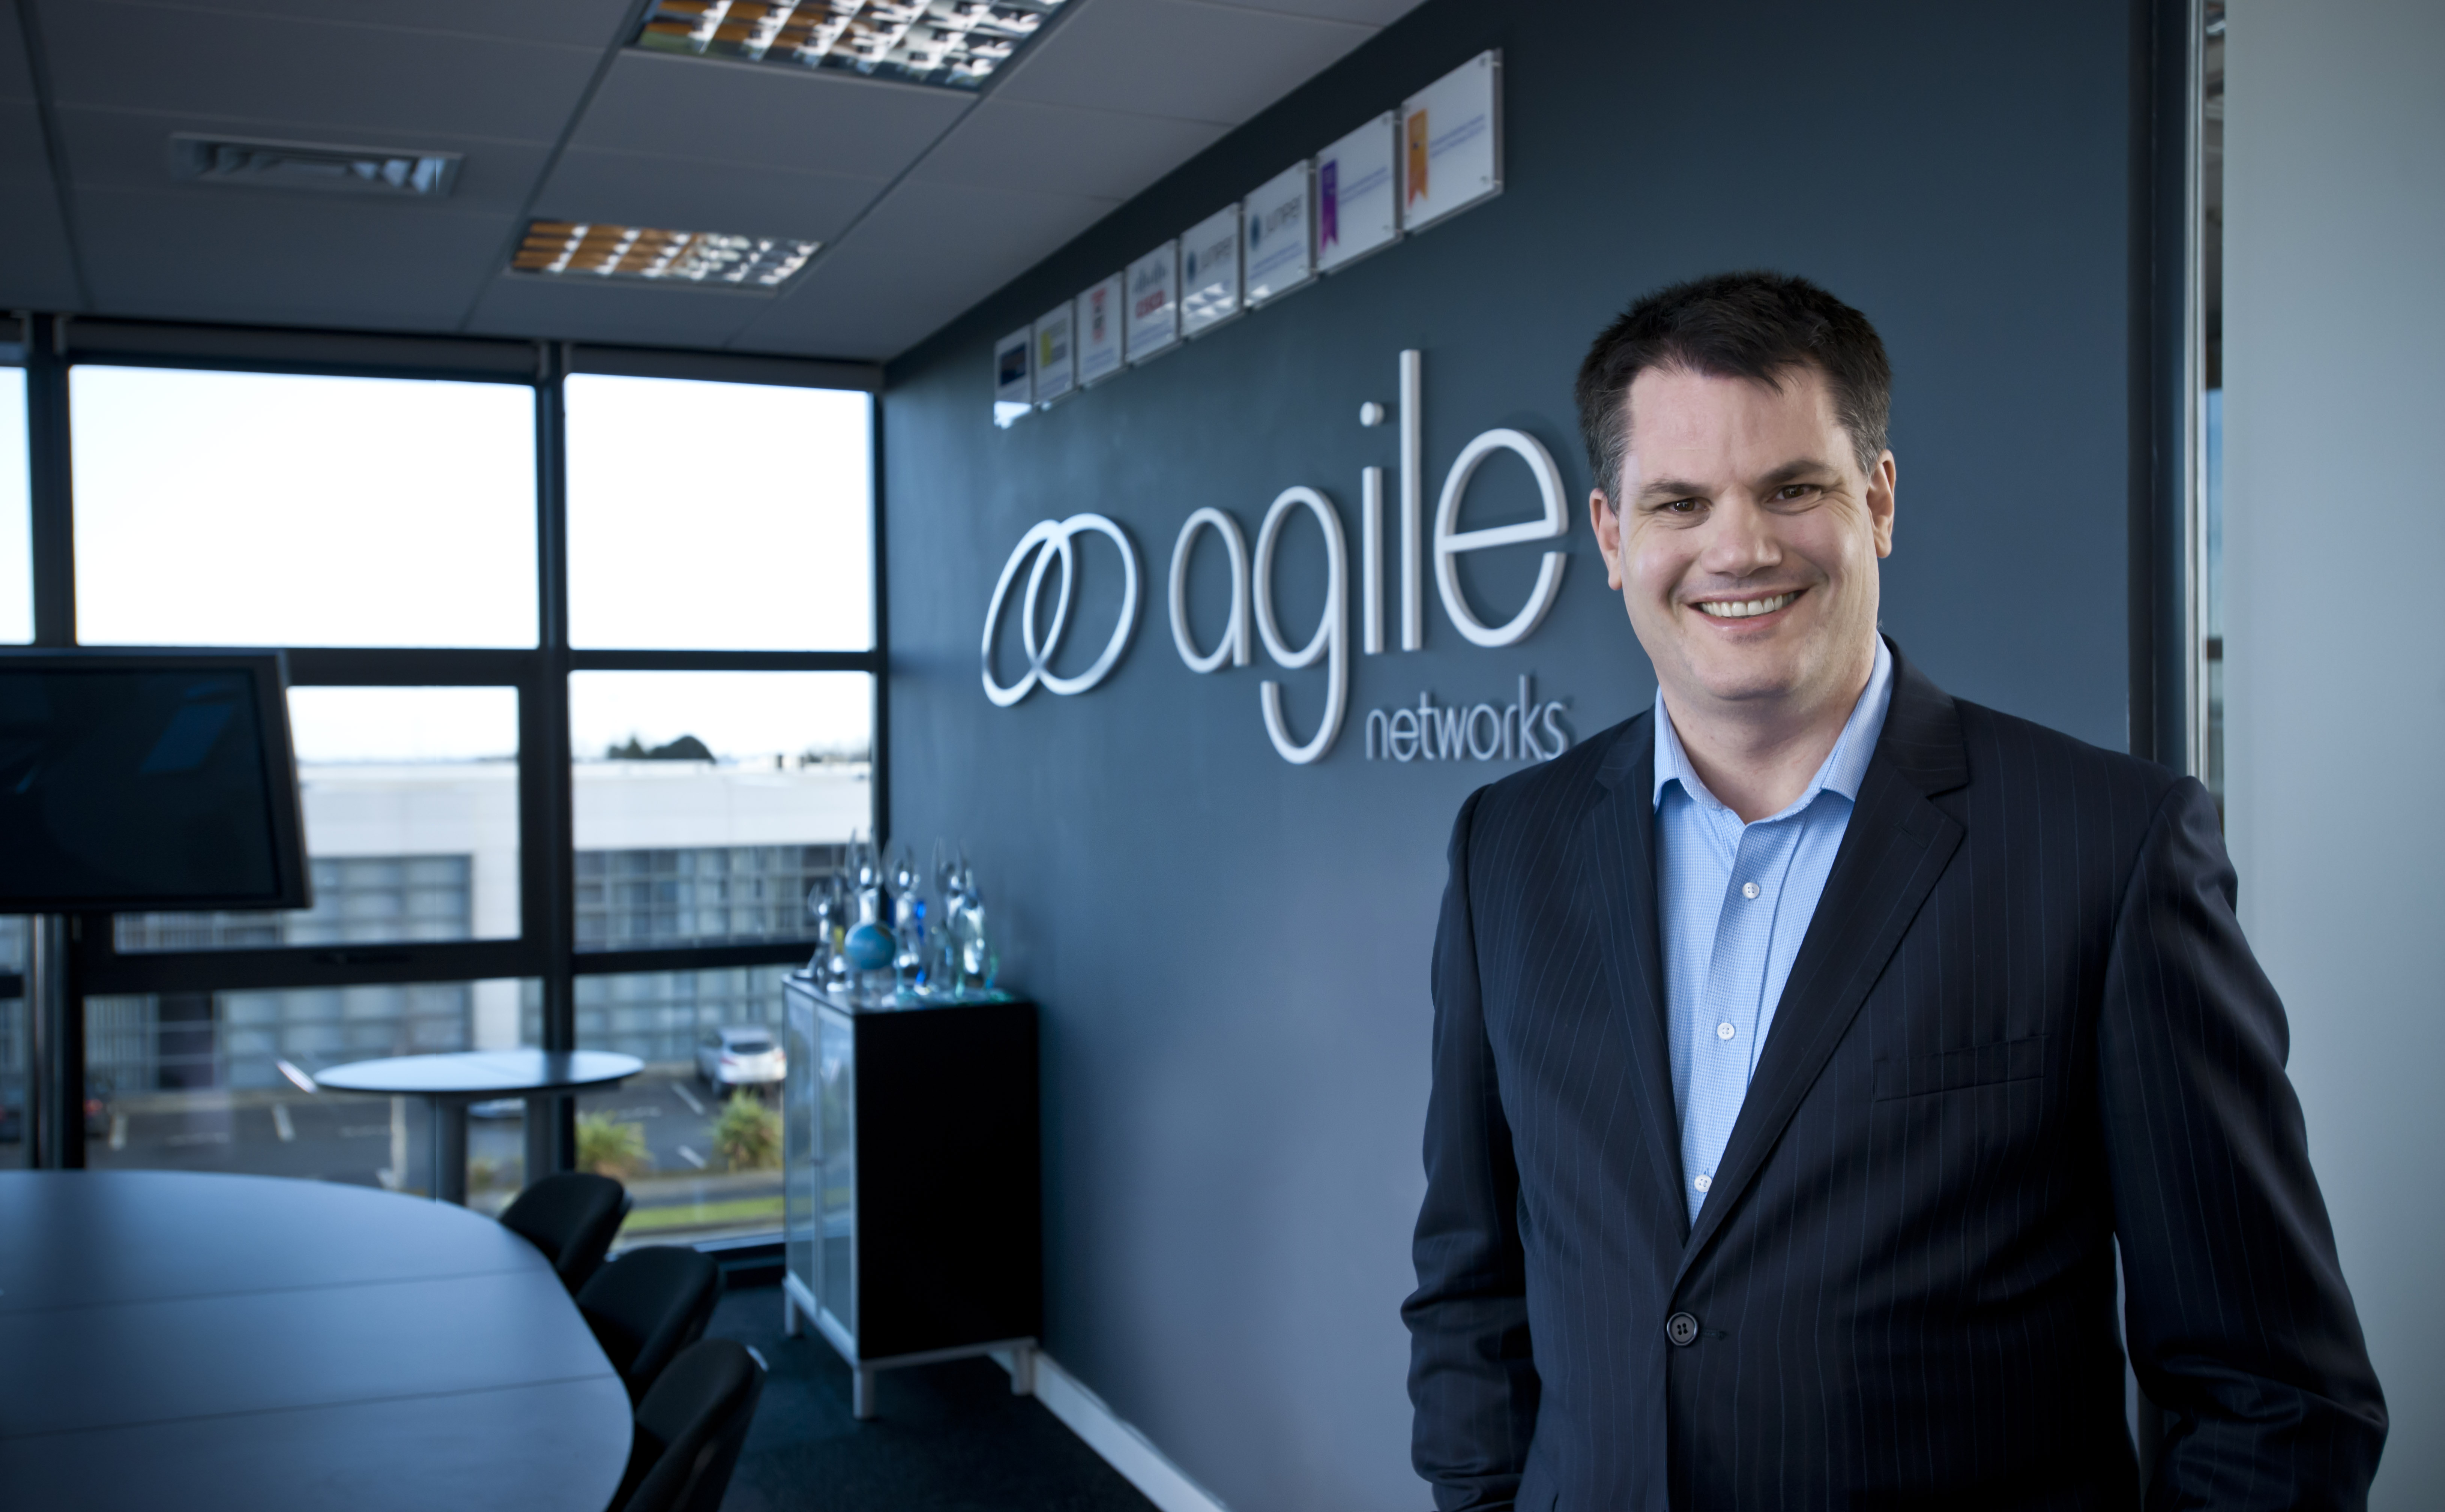 Darragh Richardson of Agile Networks in his office